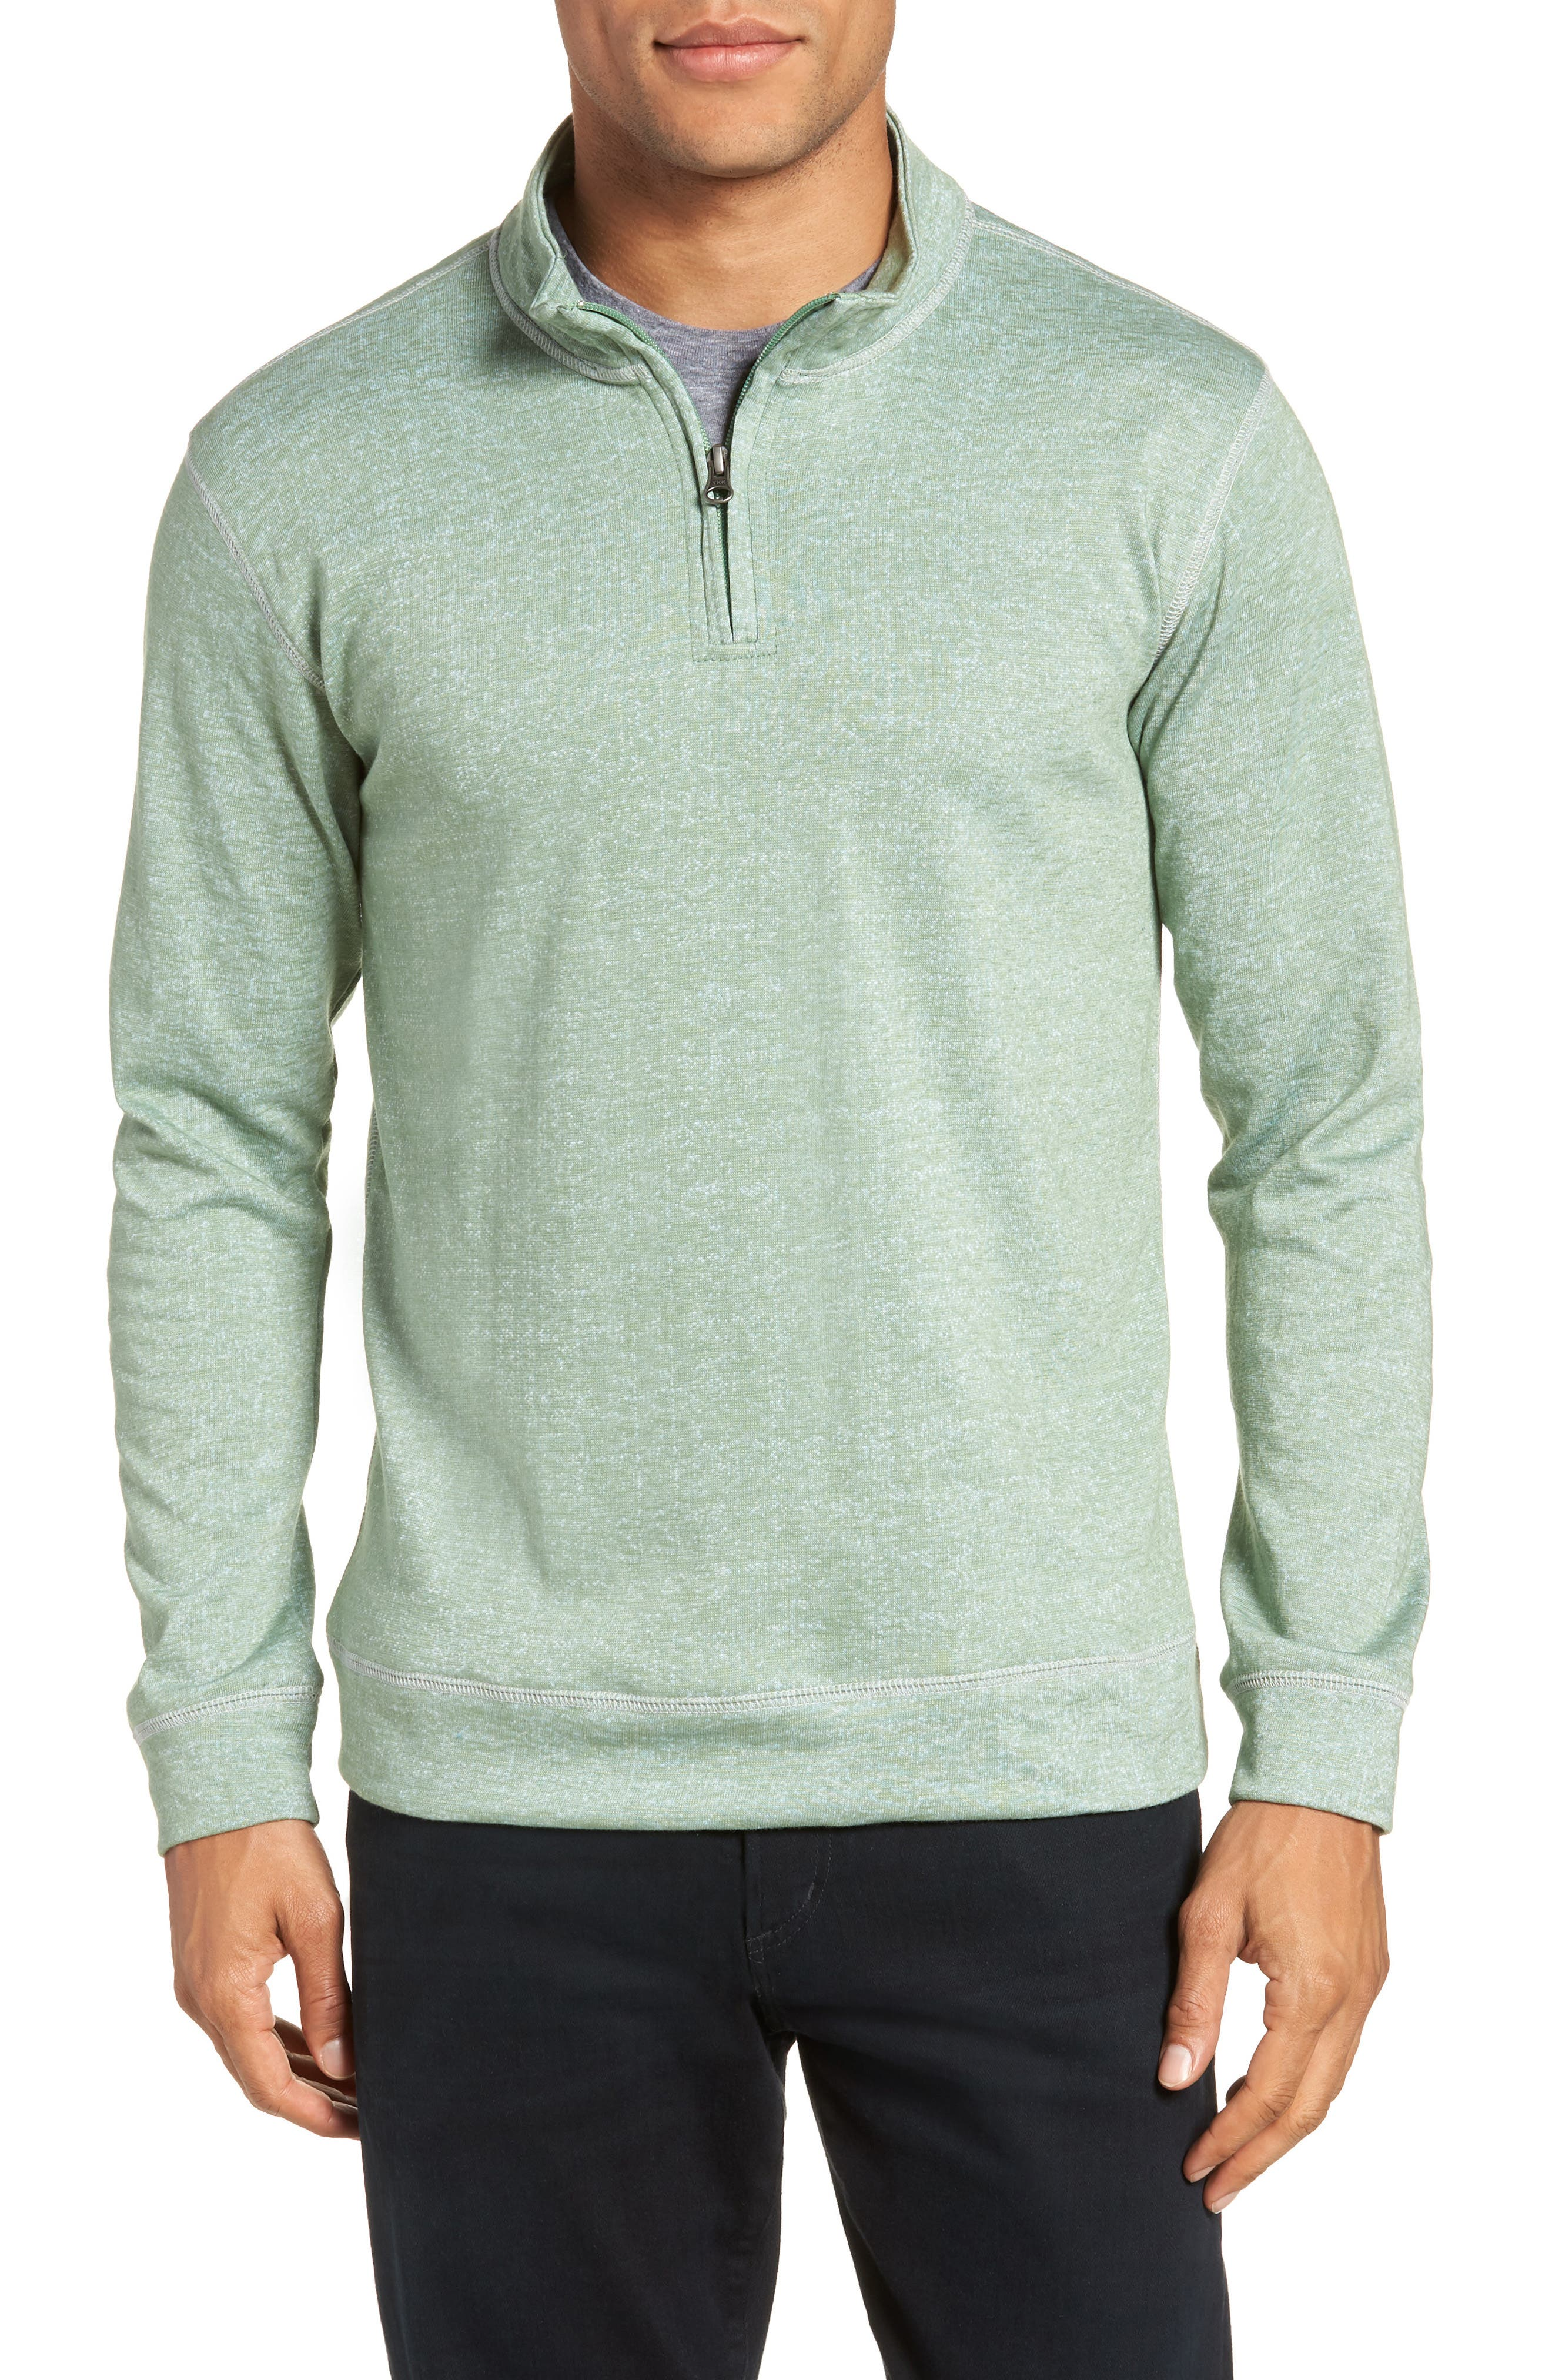 French Terry Quarter Zip Shirt,                             Main thumbnail 1, color,                             HEDGE